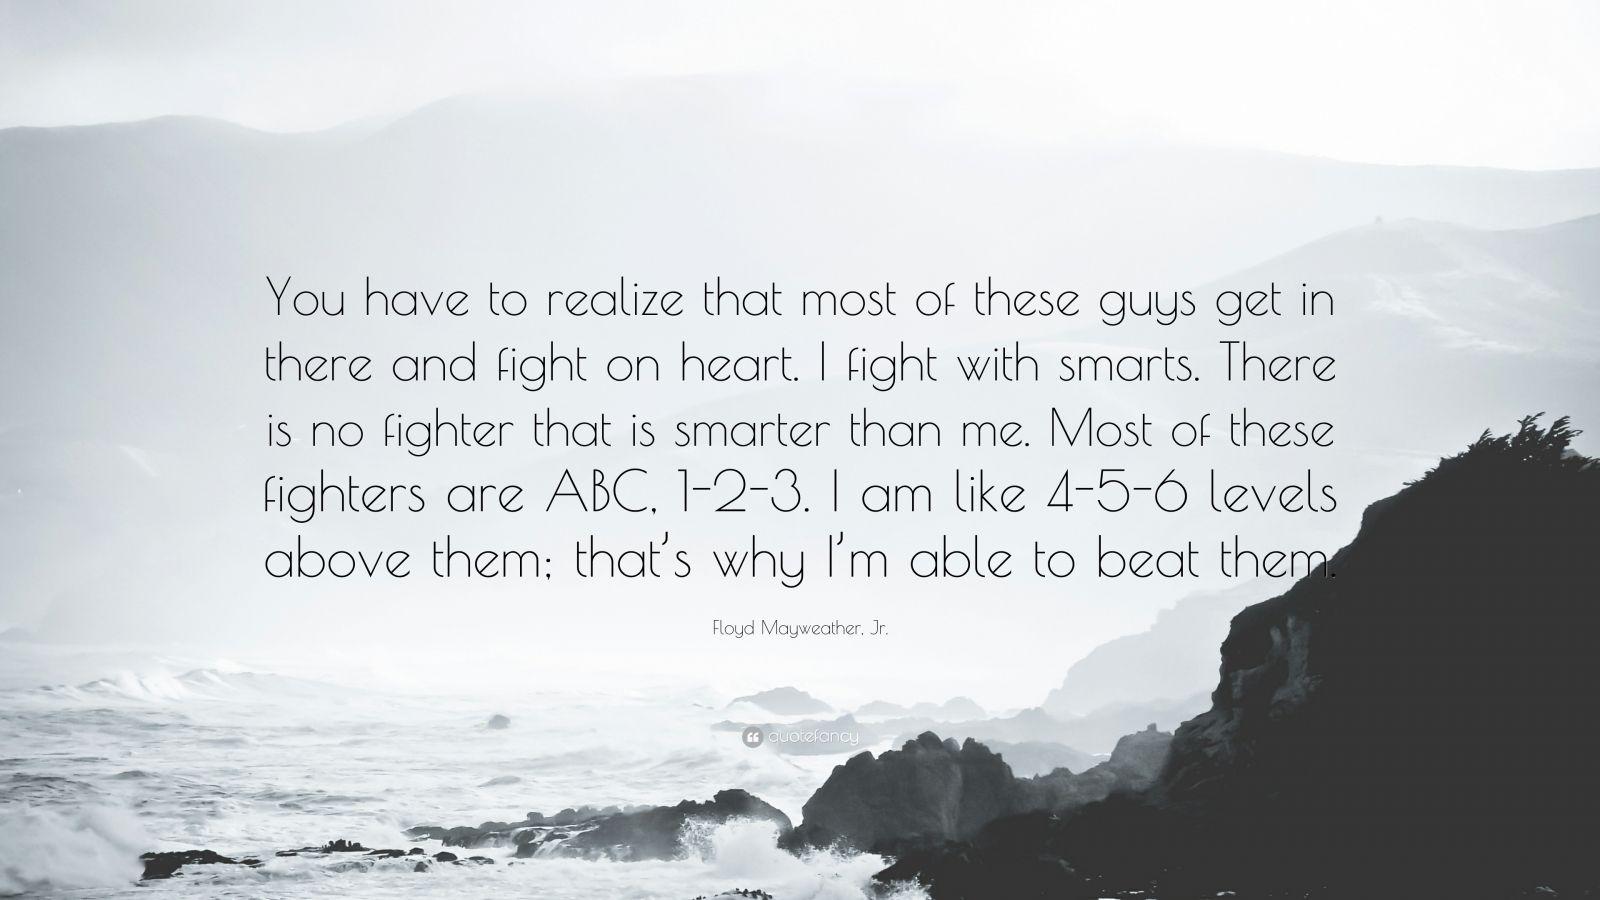 """Floyd Mayweather, Jr. Quote: """"You have to realize that most of these guys get in there and fight on heart. I fight with smarts. There is no fighter that is smarter than me. Most of these fighters are ABC, 1-2-3. I am like 4-5-6 levels above them; that's why I'm able to beat them."""""""